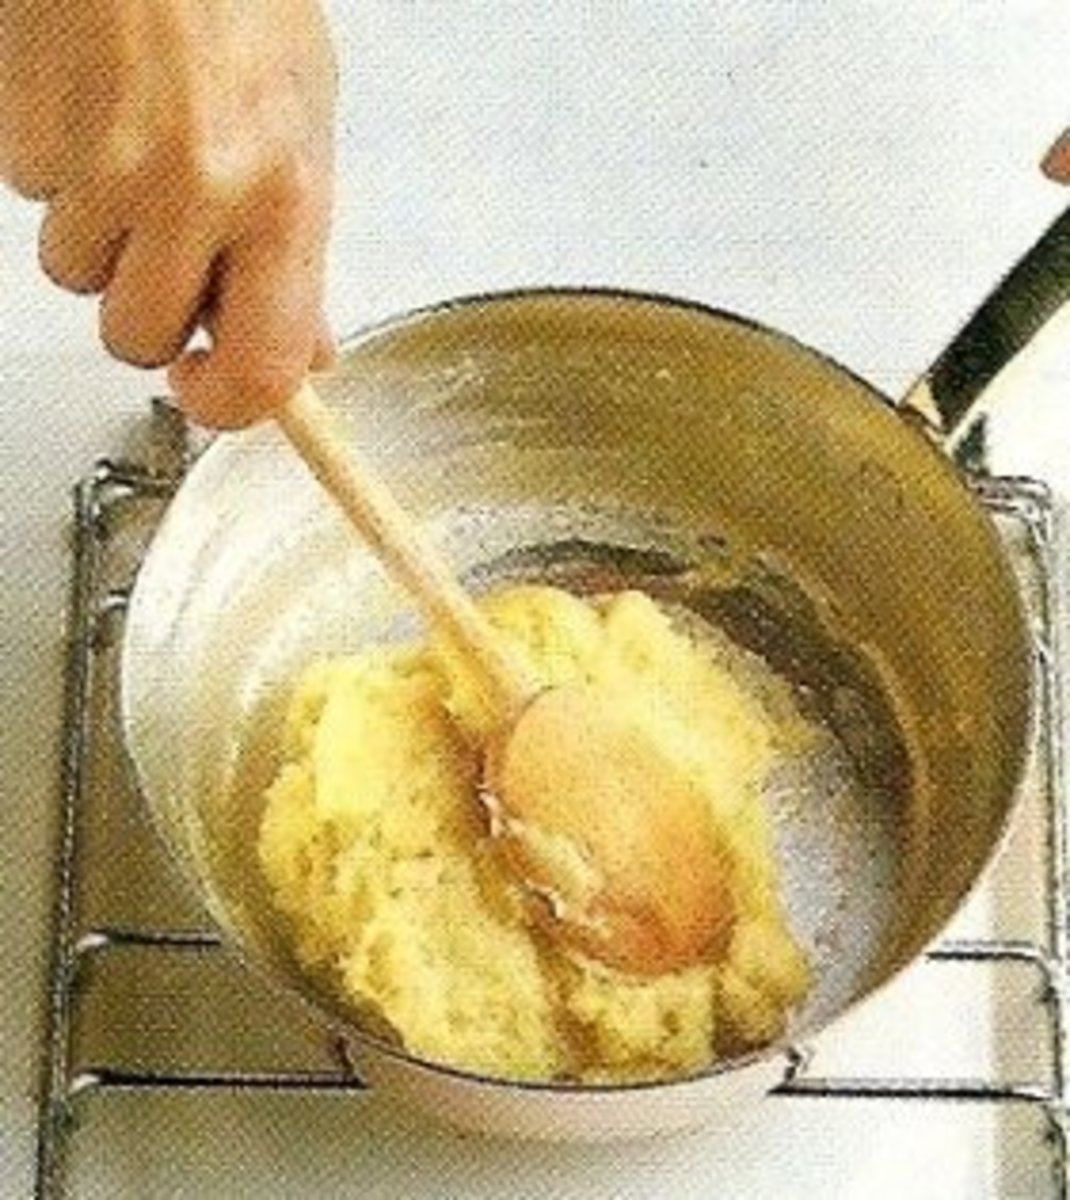 How to Make and Shape Choux Pastry: Step-by-Step with Pictures and a Video